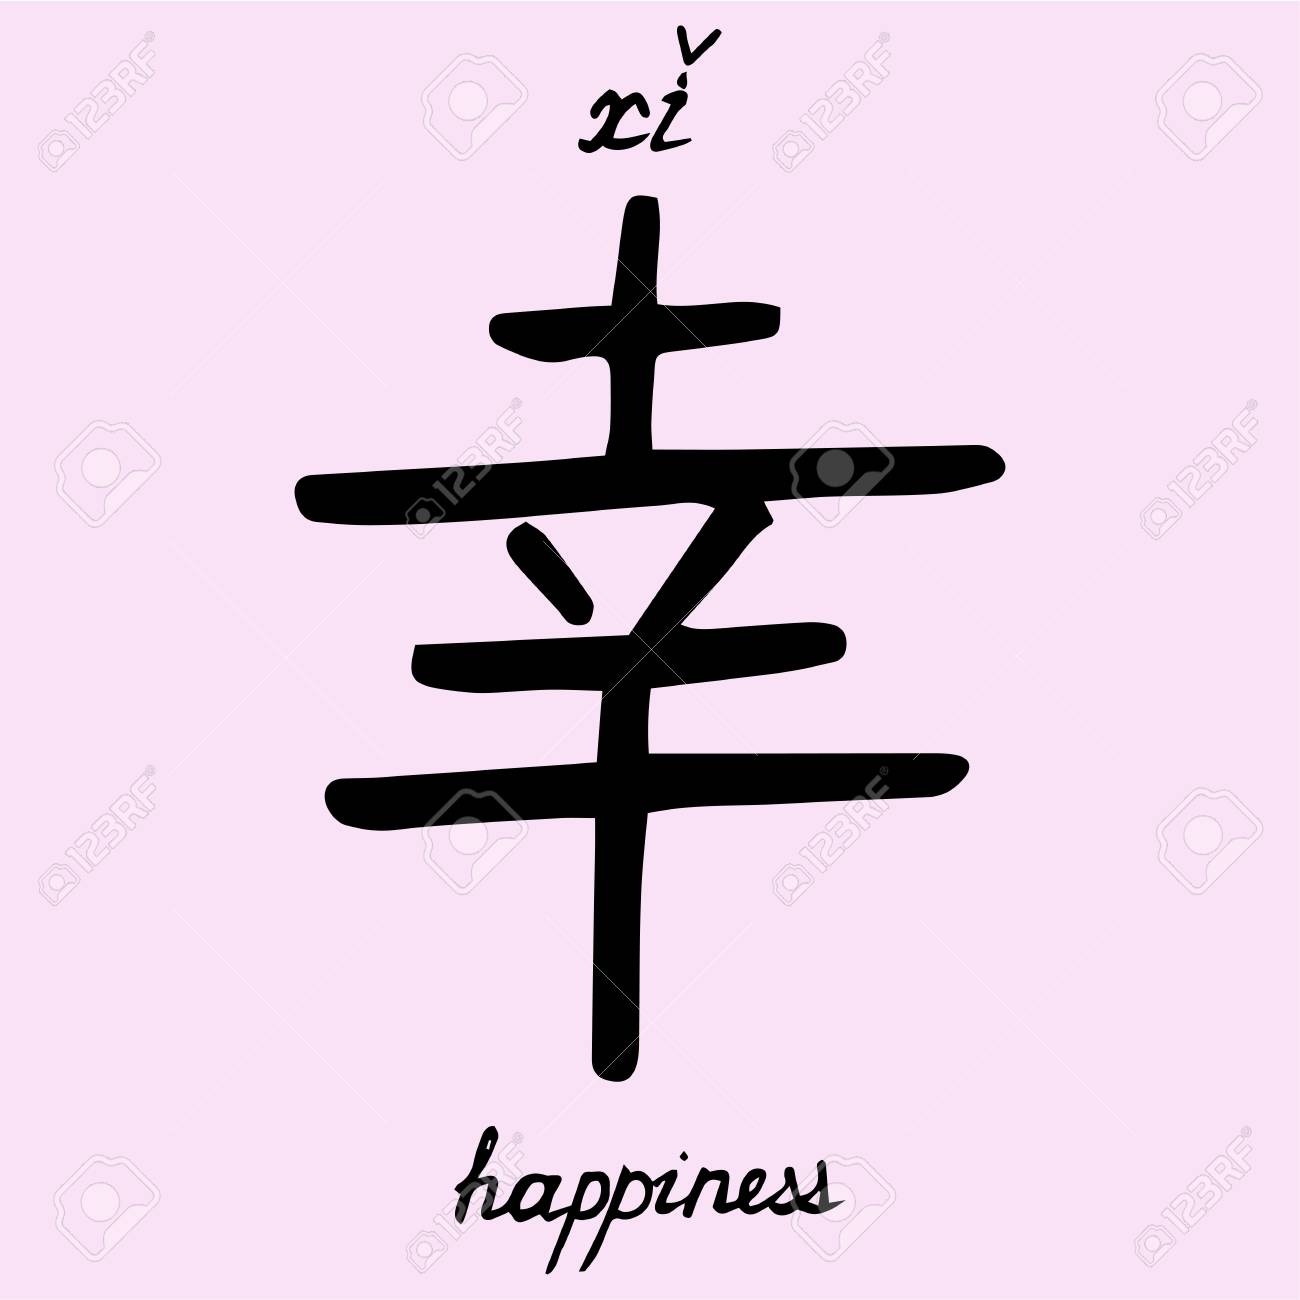 Chinese Character Happiness With Translation Into English Royalty